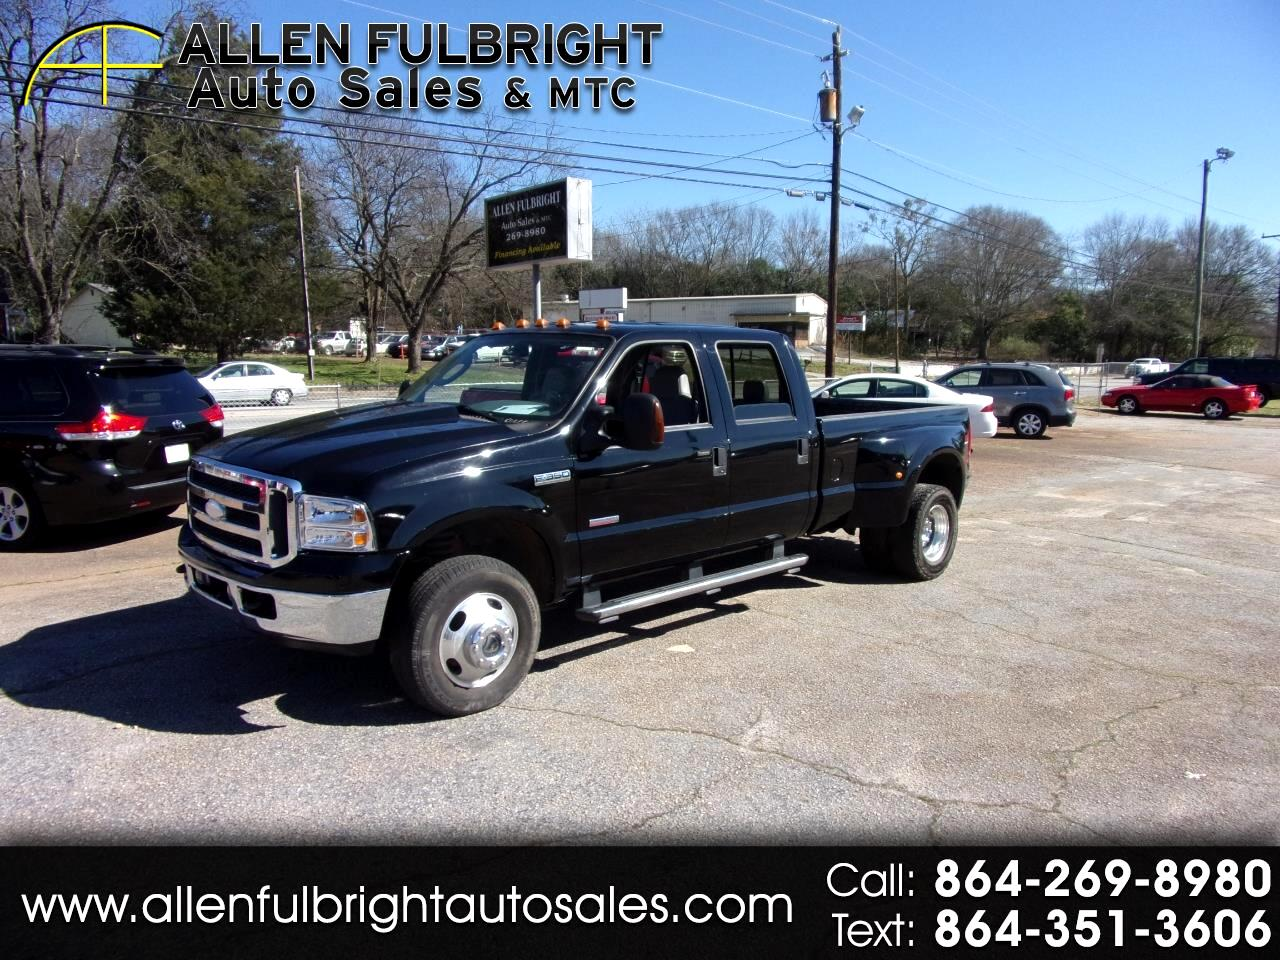 Ford F-350 SD Lariat Crew Cab Long Bed 4WD DRW 2005